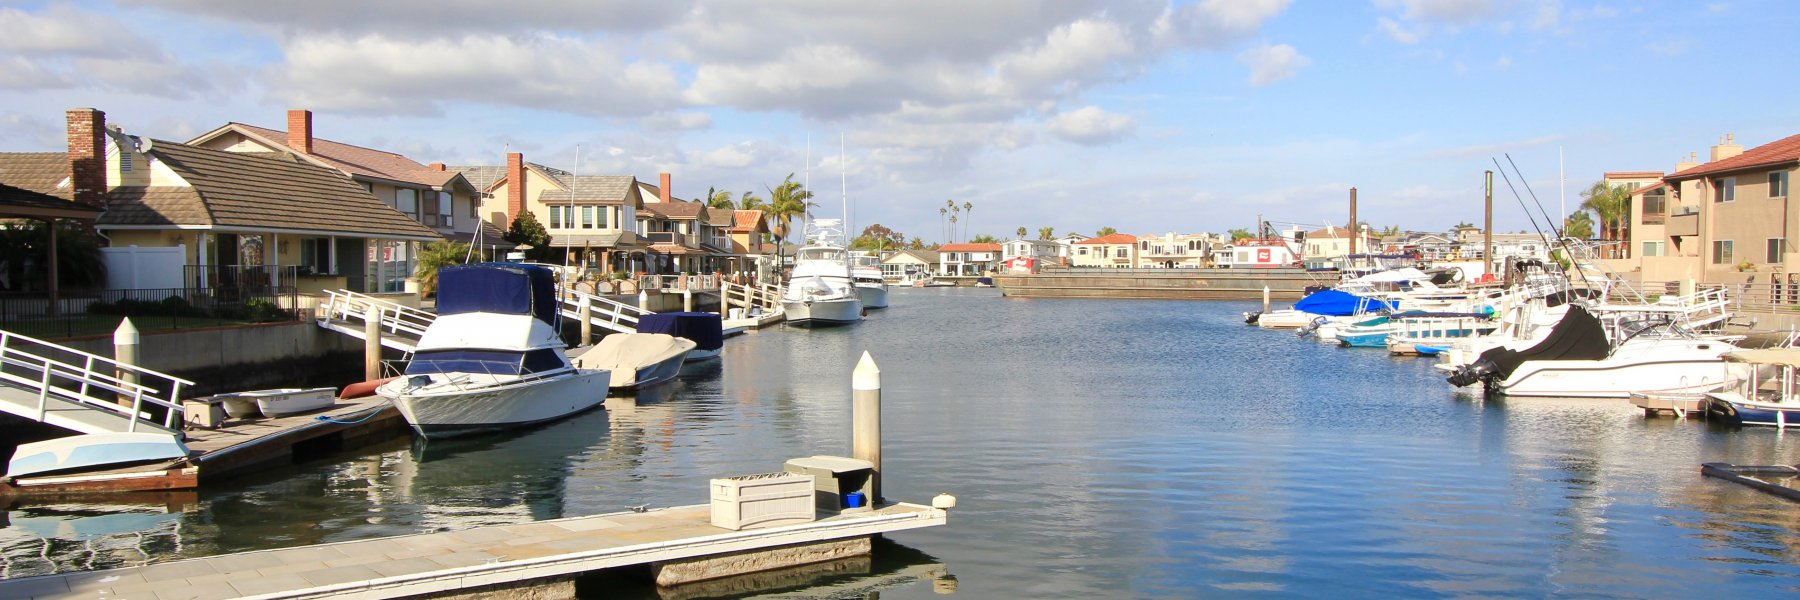 Coral Cay is a community of homes in Huntington Beach California